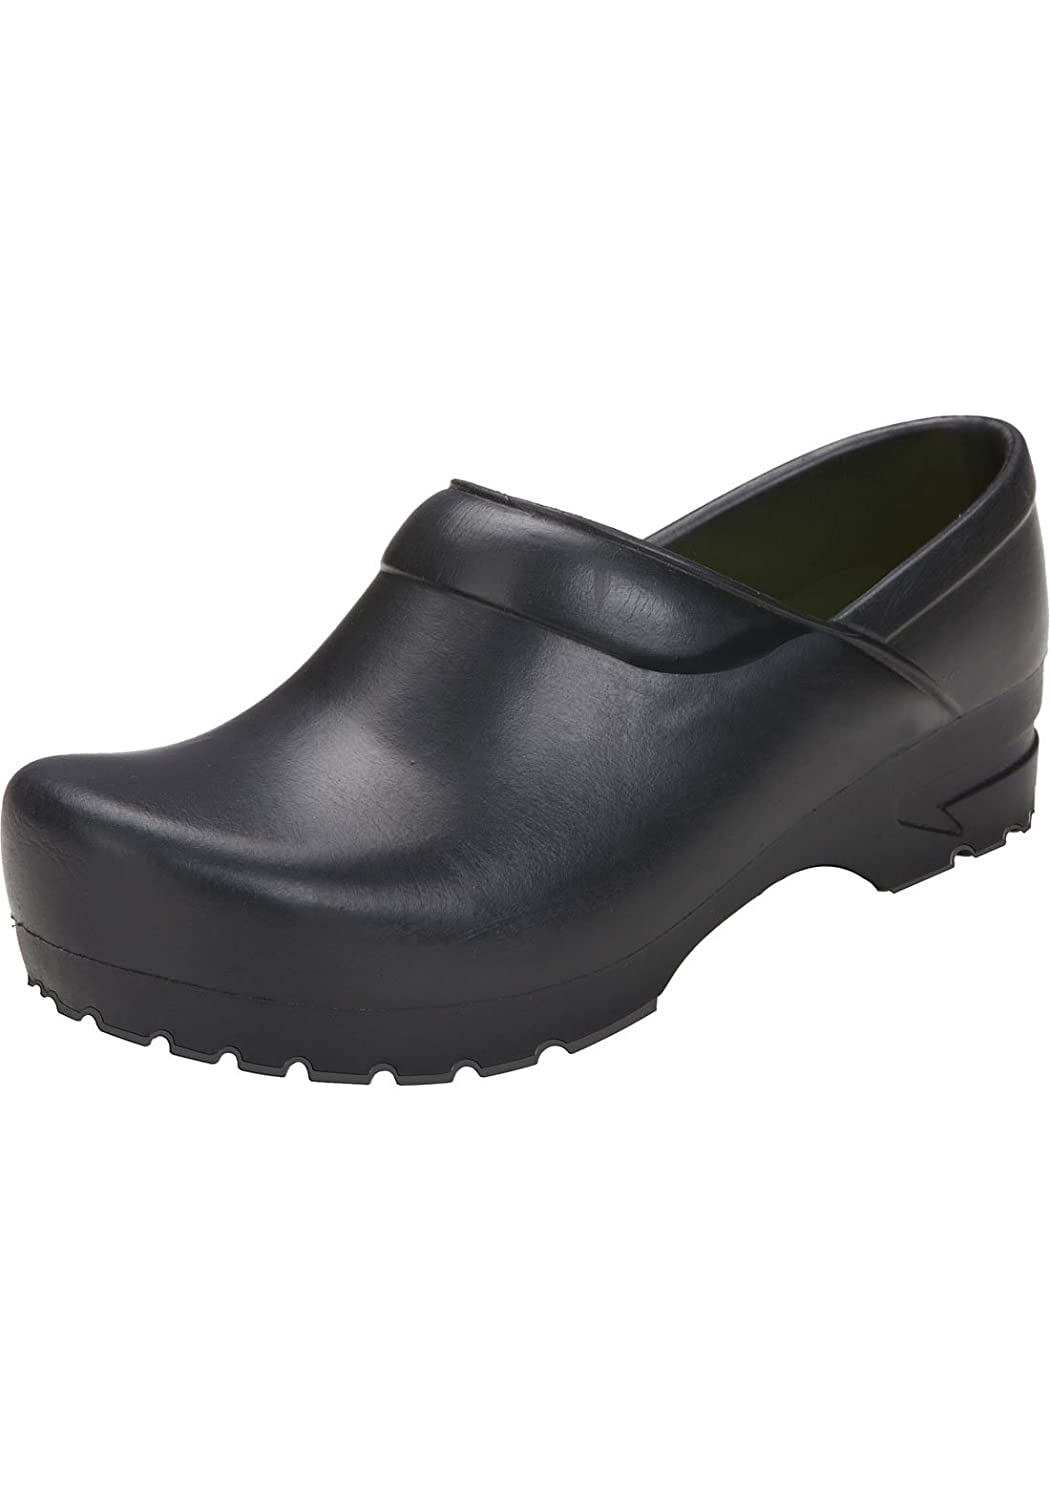 Anywear Closed Back Plastic Clog | Caring Is Love Size 5